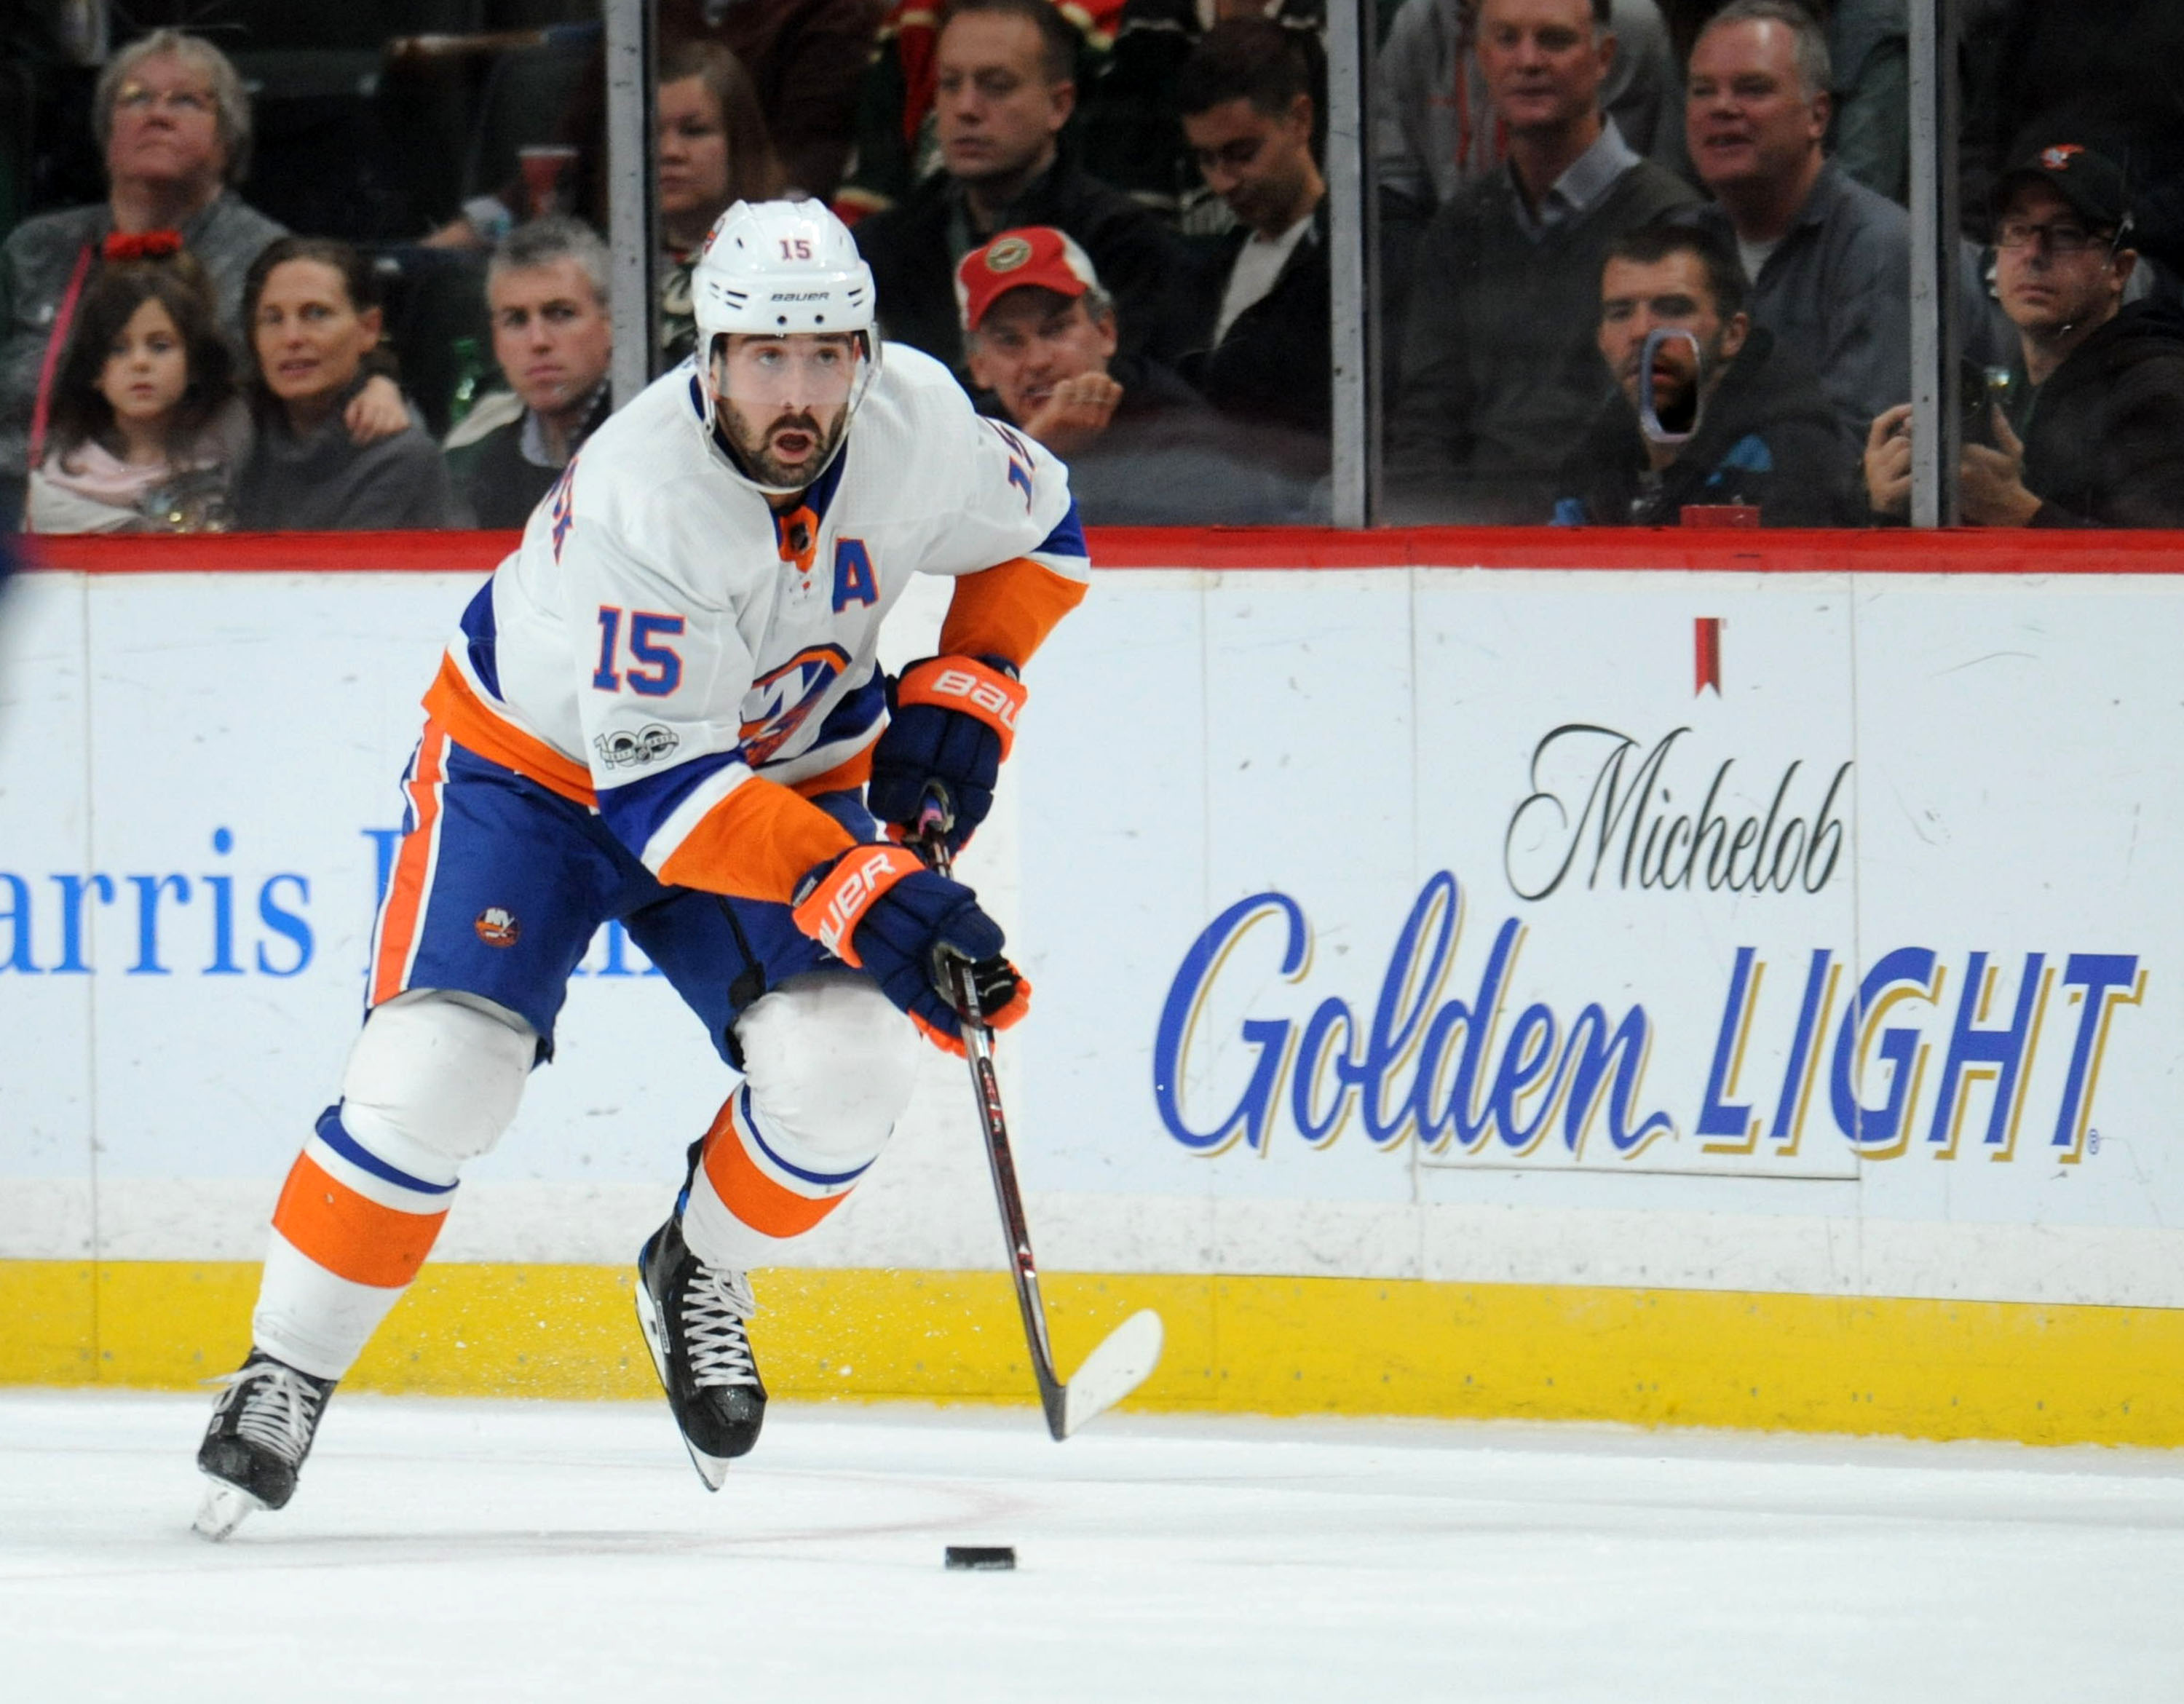 Clutterbuck finally finds the back of the net